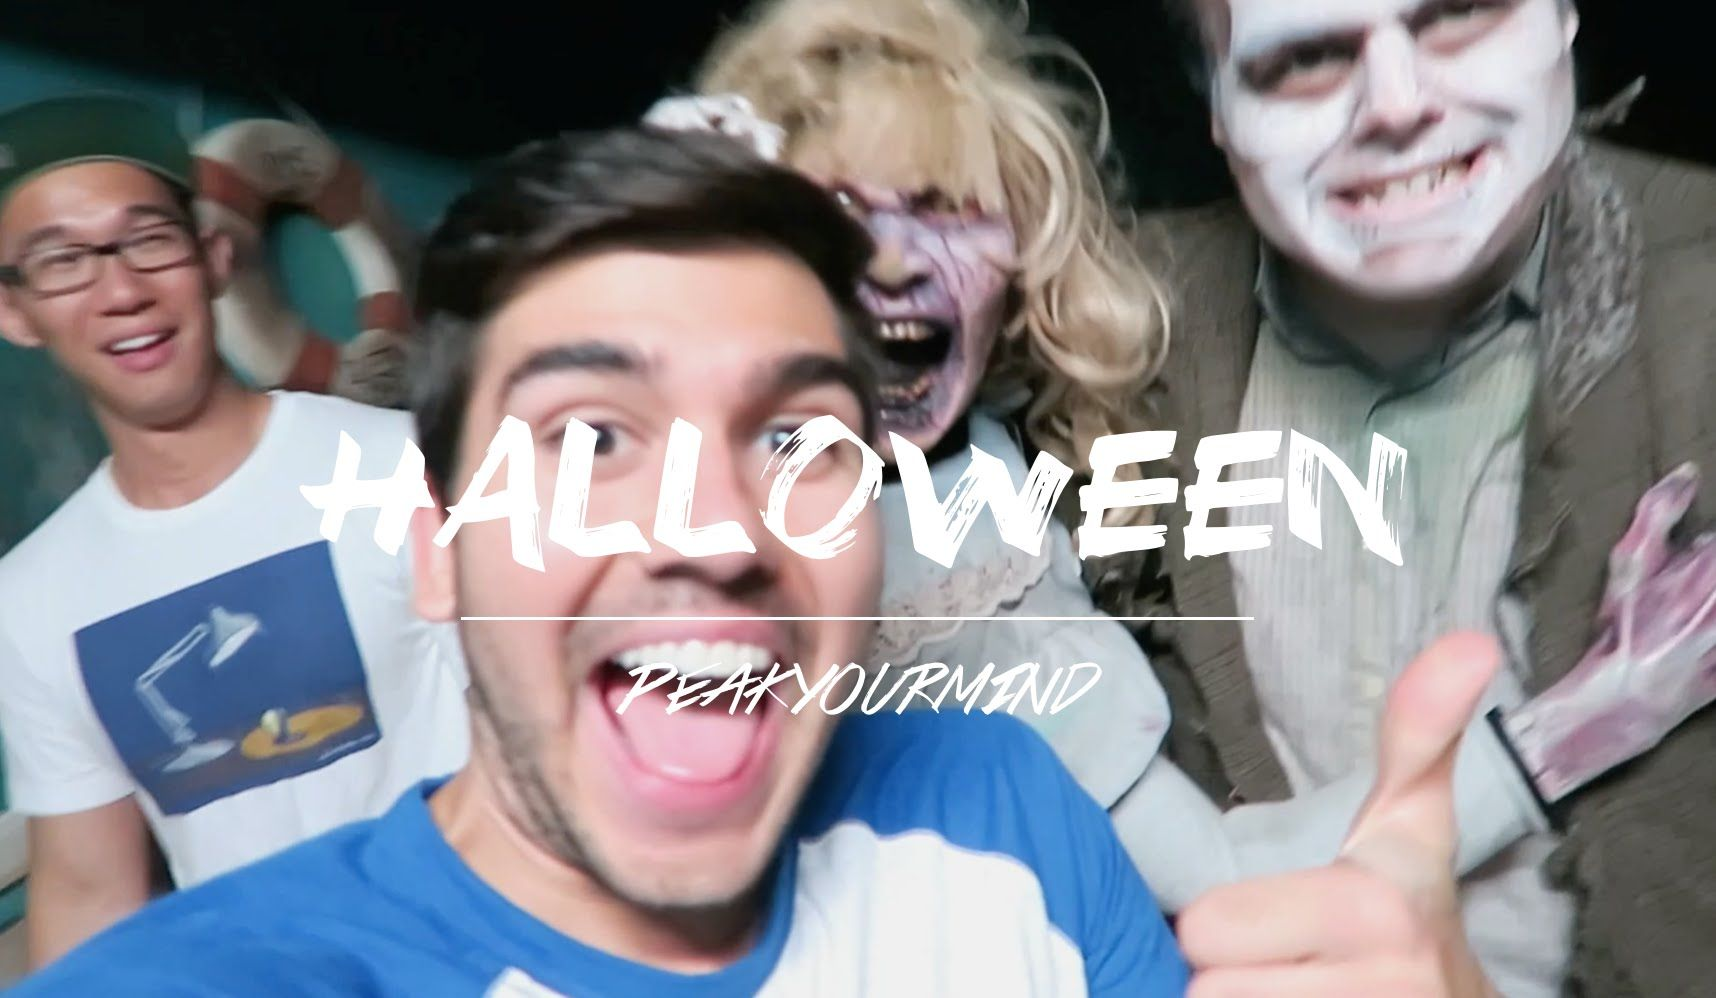 HALLOWEEN SCARE video! To say I didn't scream multiple times at the top of my lungs would be a lie. Enjoy the new halloween episode! :)